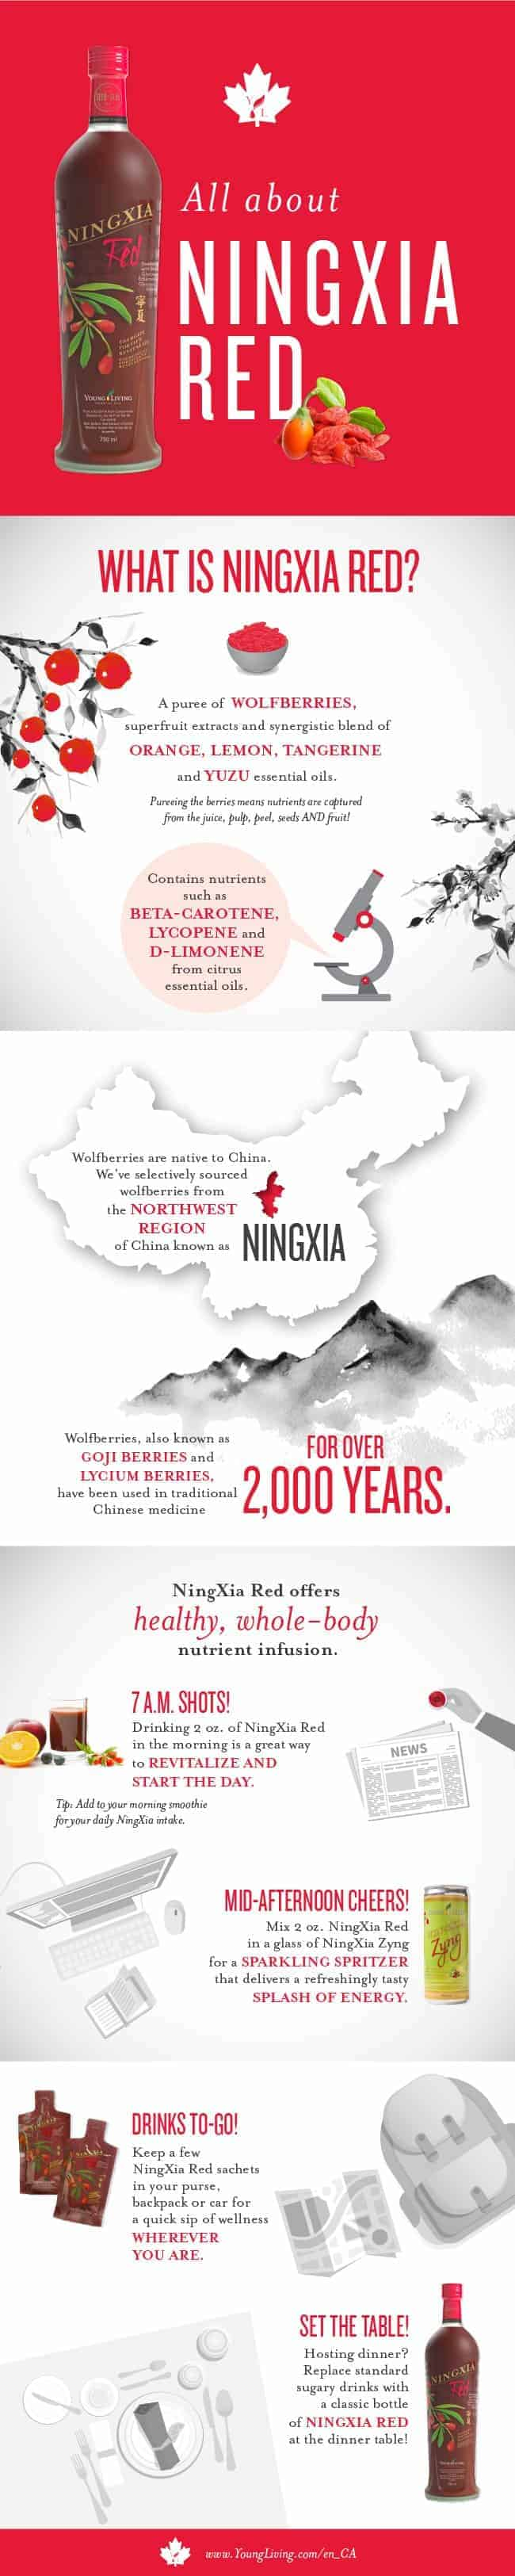 NINGXIA RED INFOGRAPHIC